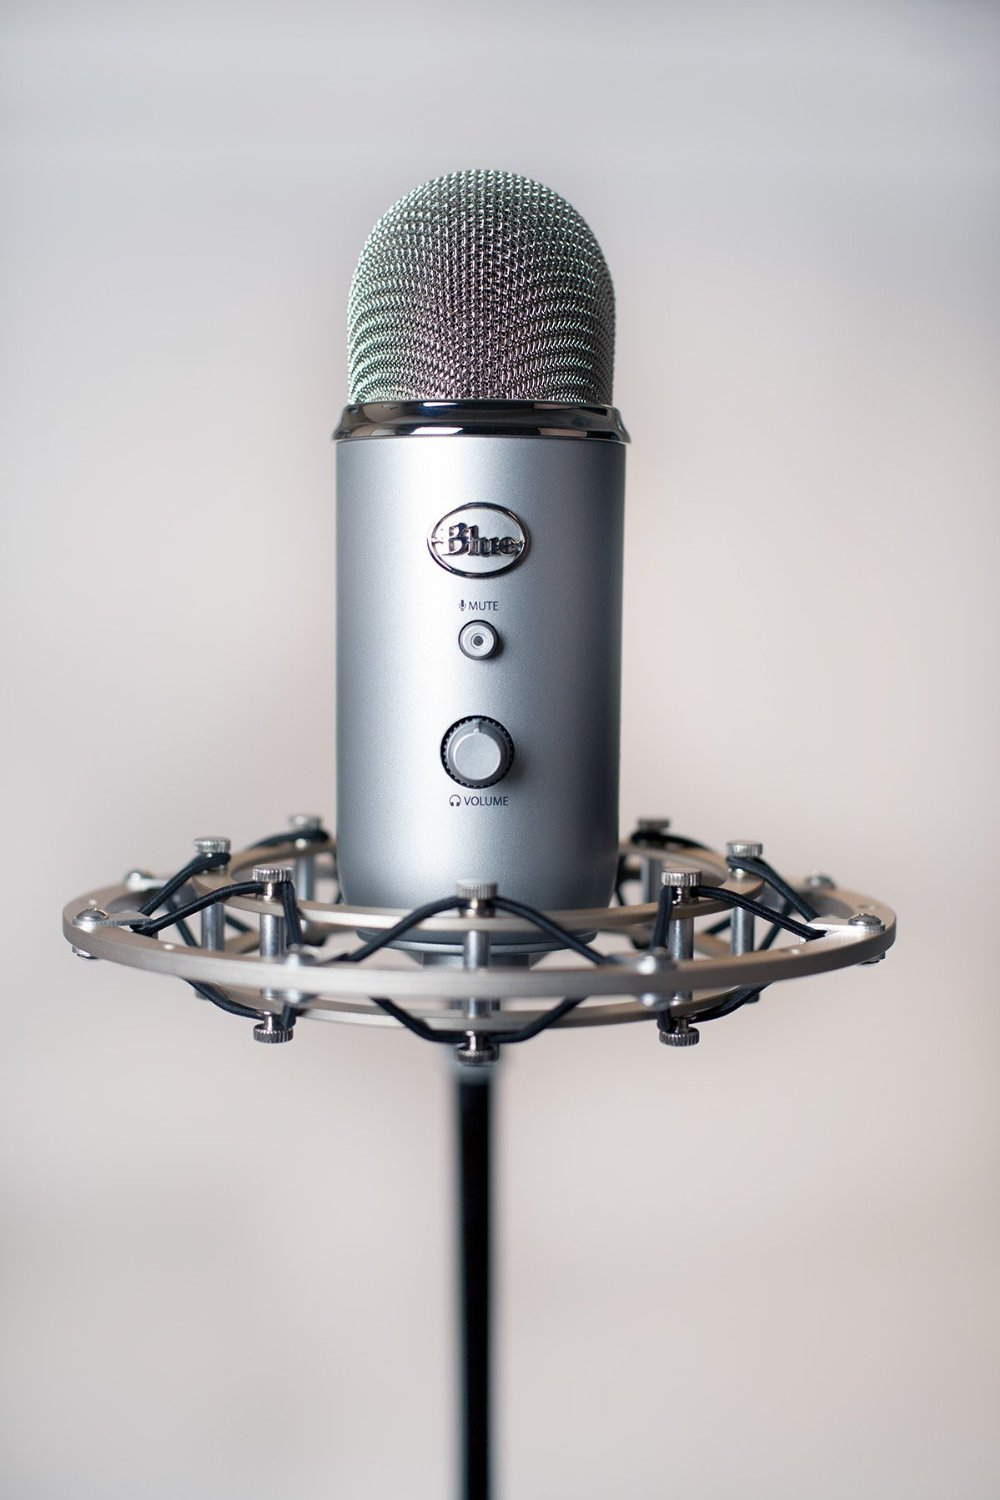 Shock mount by Blue A great recording can be ruined by vibration picked up through the table your mic is sitting on. This shock mount absorbs all of that vibration and isolates your mic, so that you get a clean recording. Definitely a must.